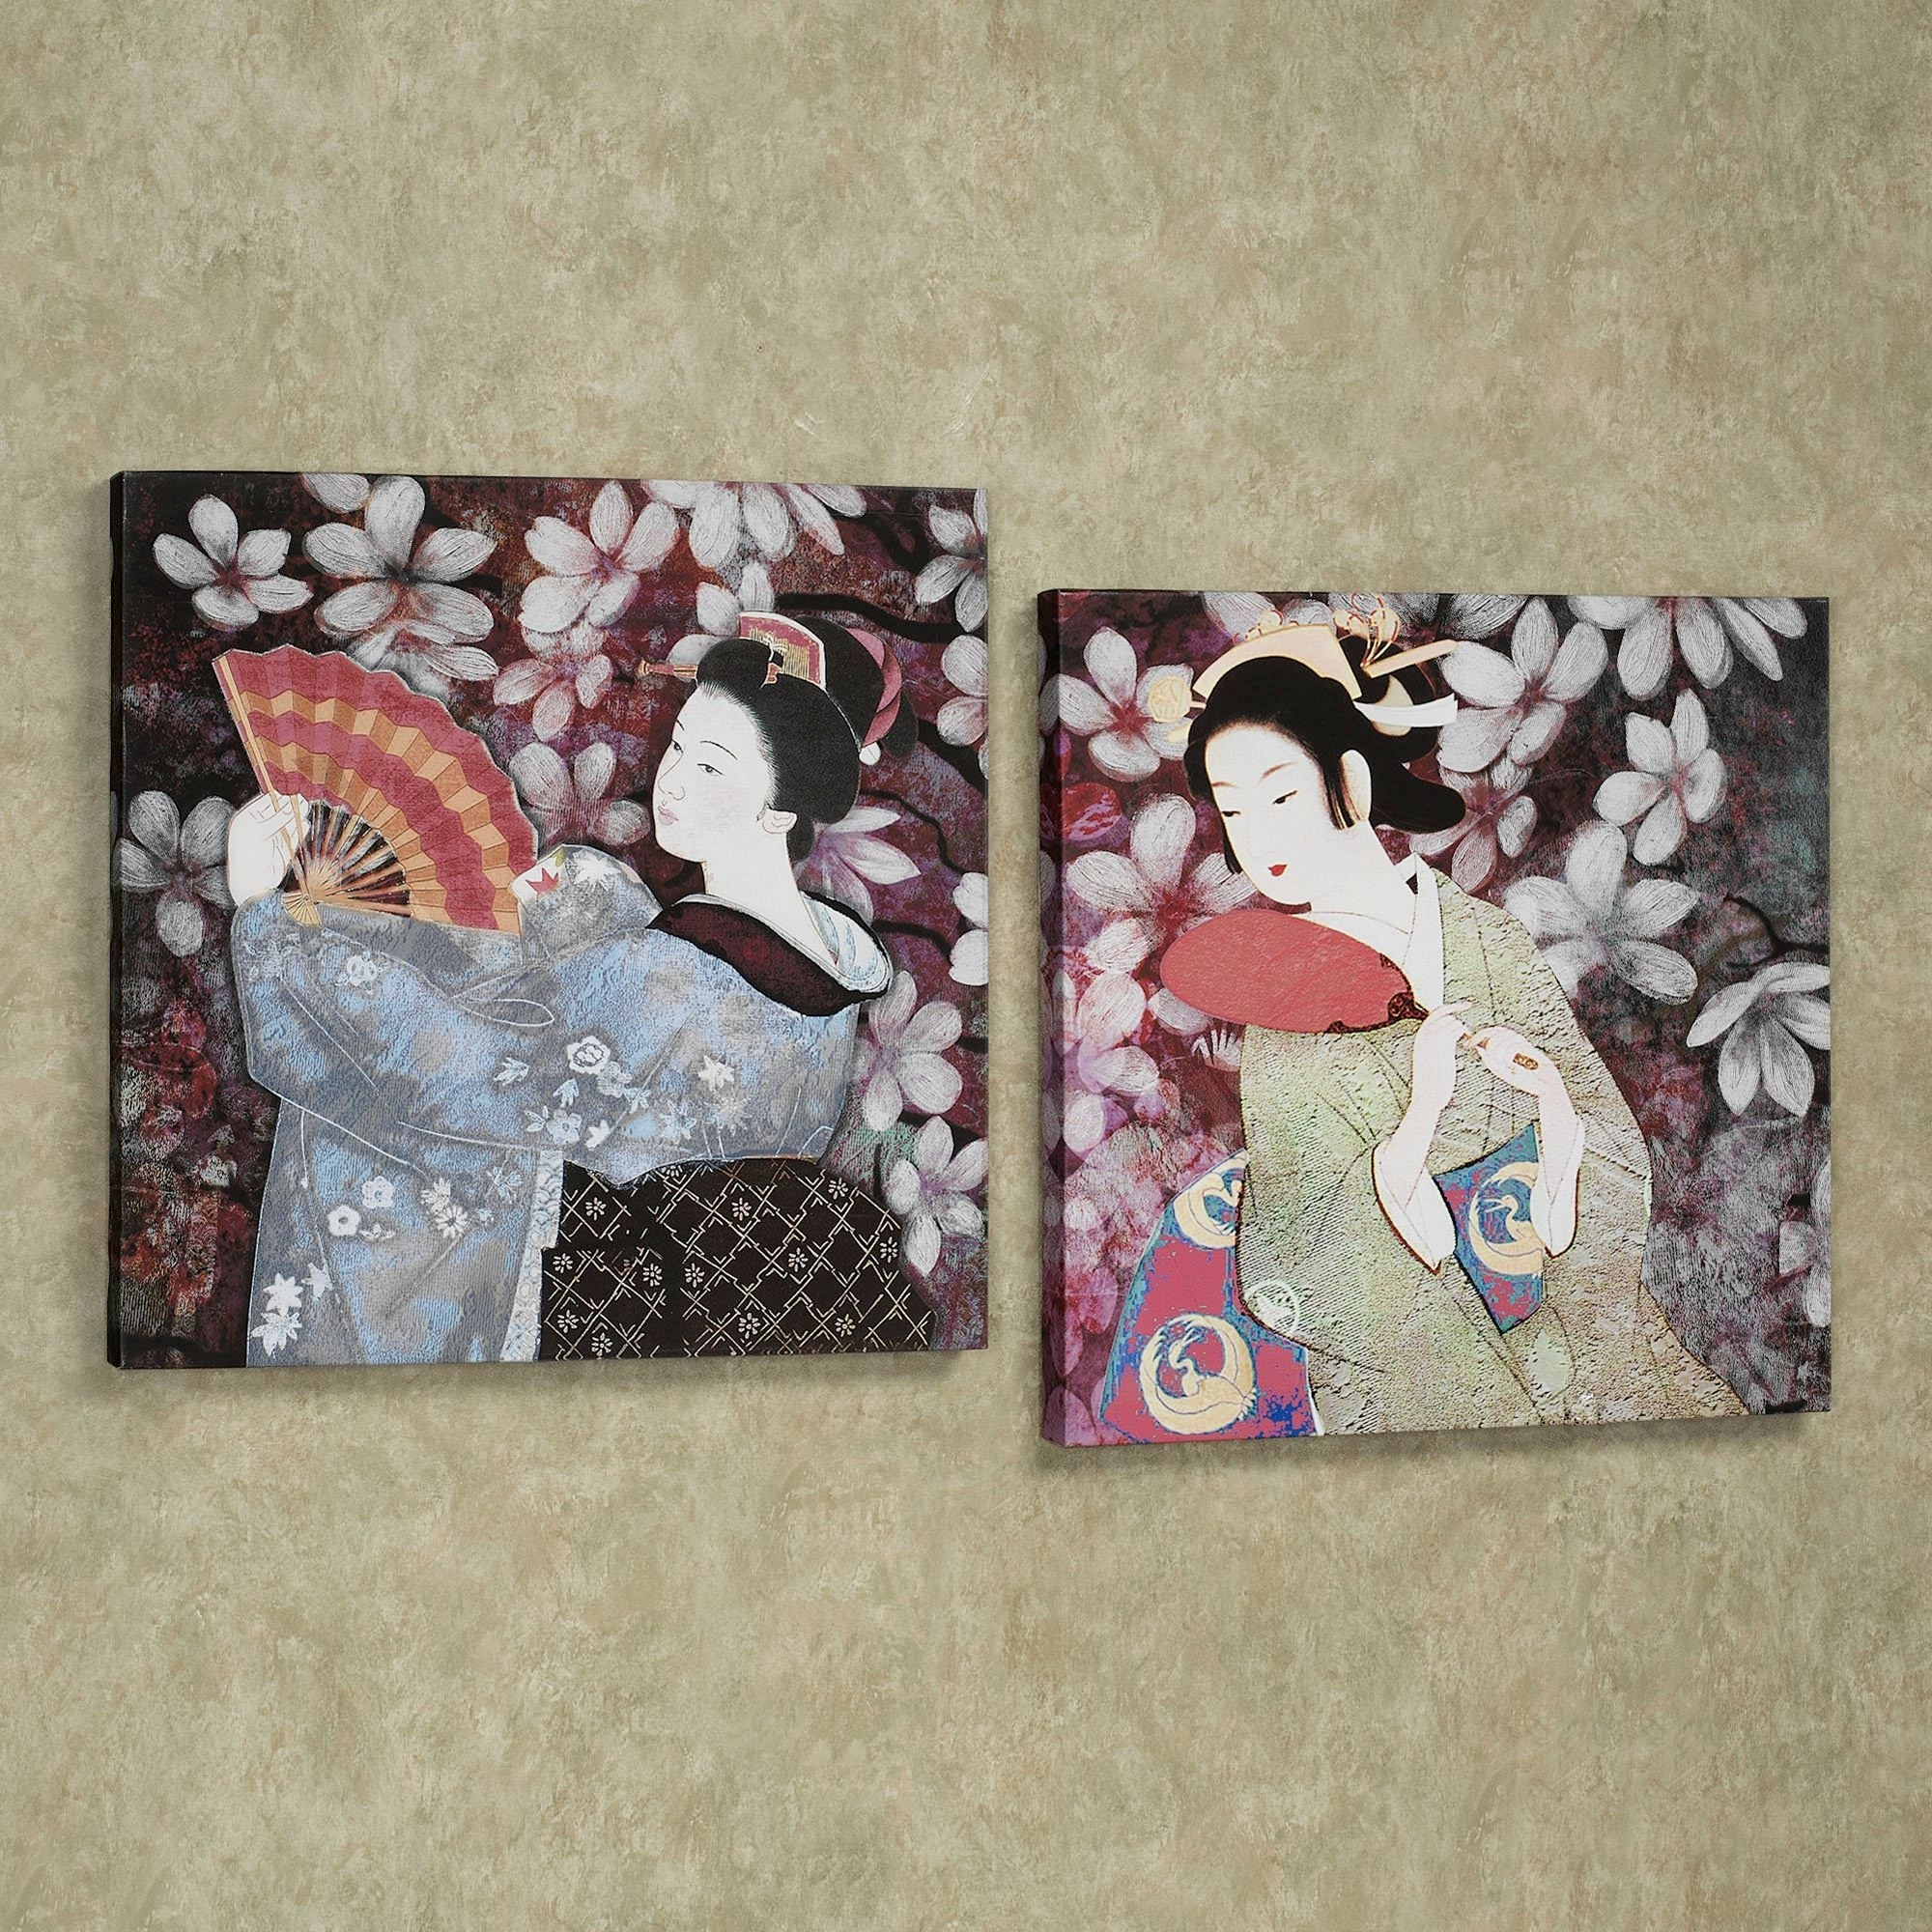 Geisha Canvas Wall Art Pertaining To Most Current Geisha Gardens Giclee Canvas Wall Art Set (View 5 of 15)